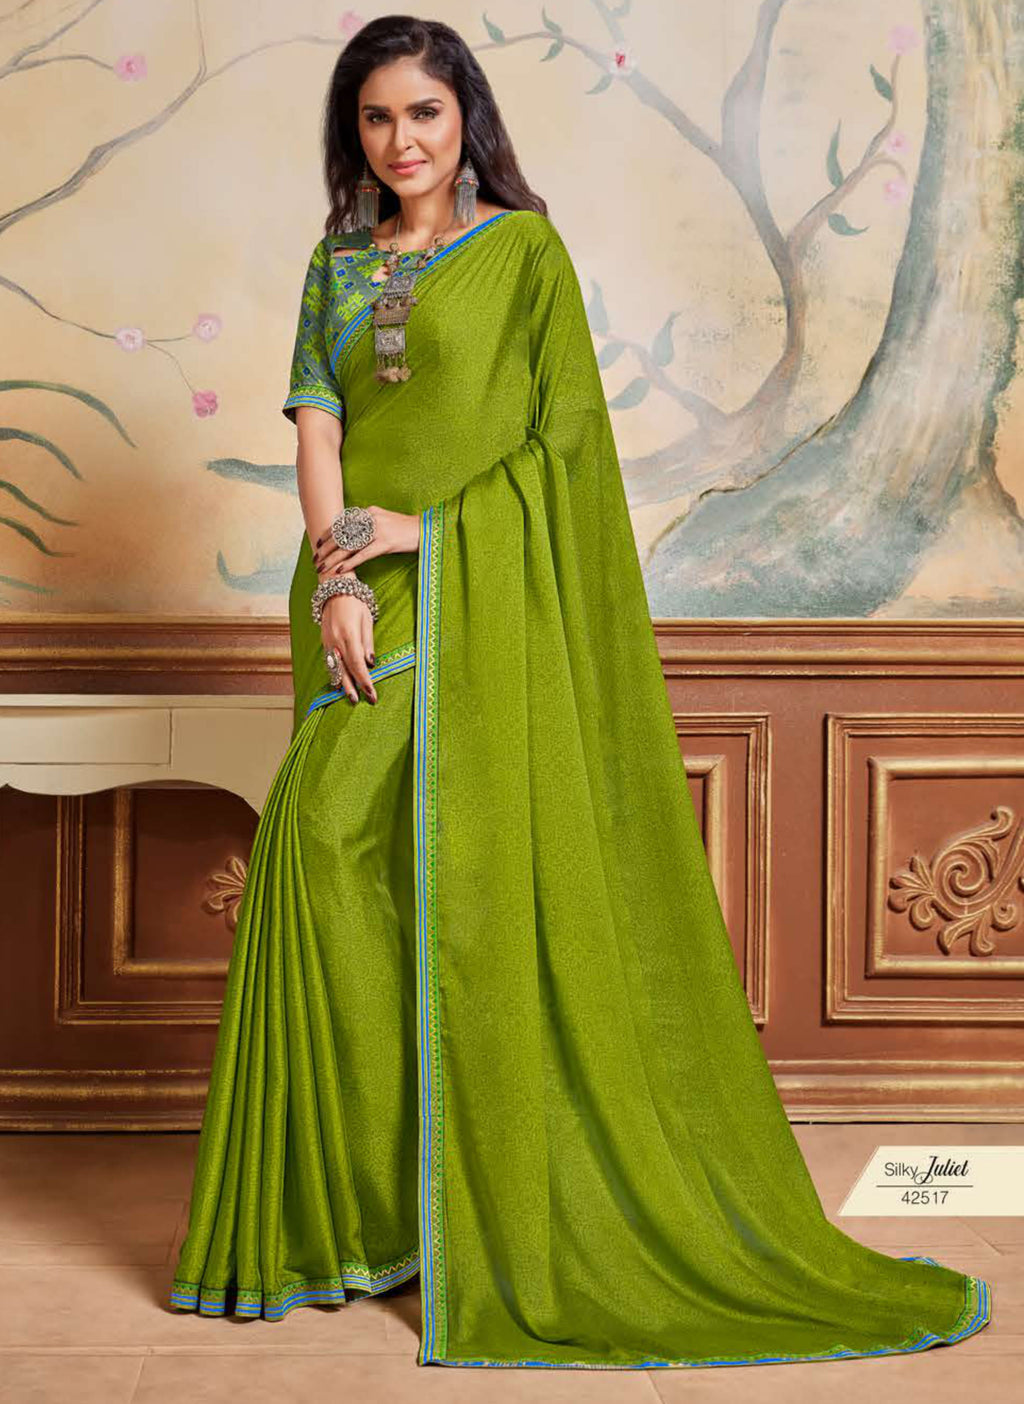 Leaf Green Color Crepe Chiffon Casual Party Sarees NYF-8590